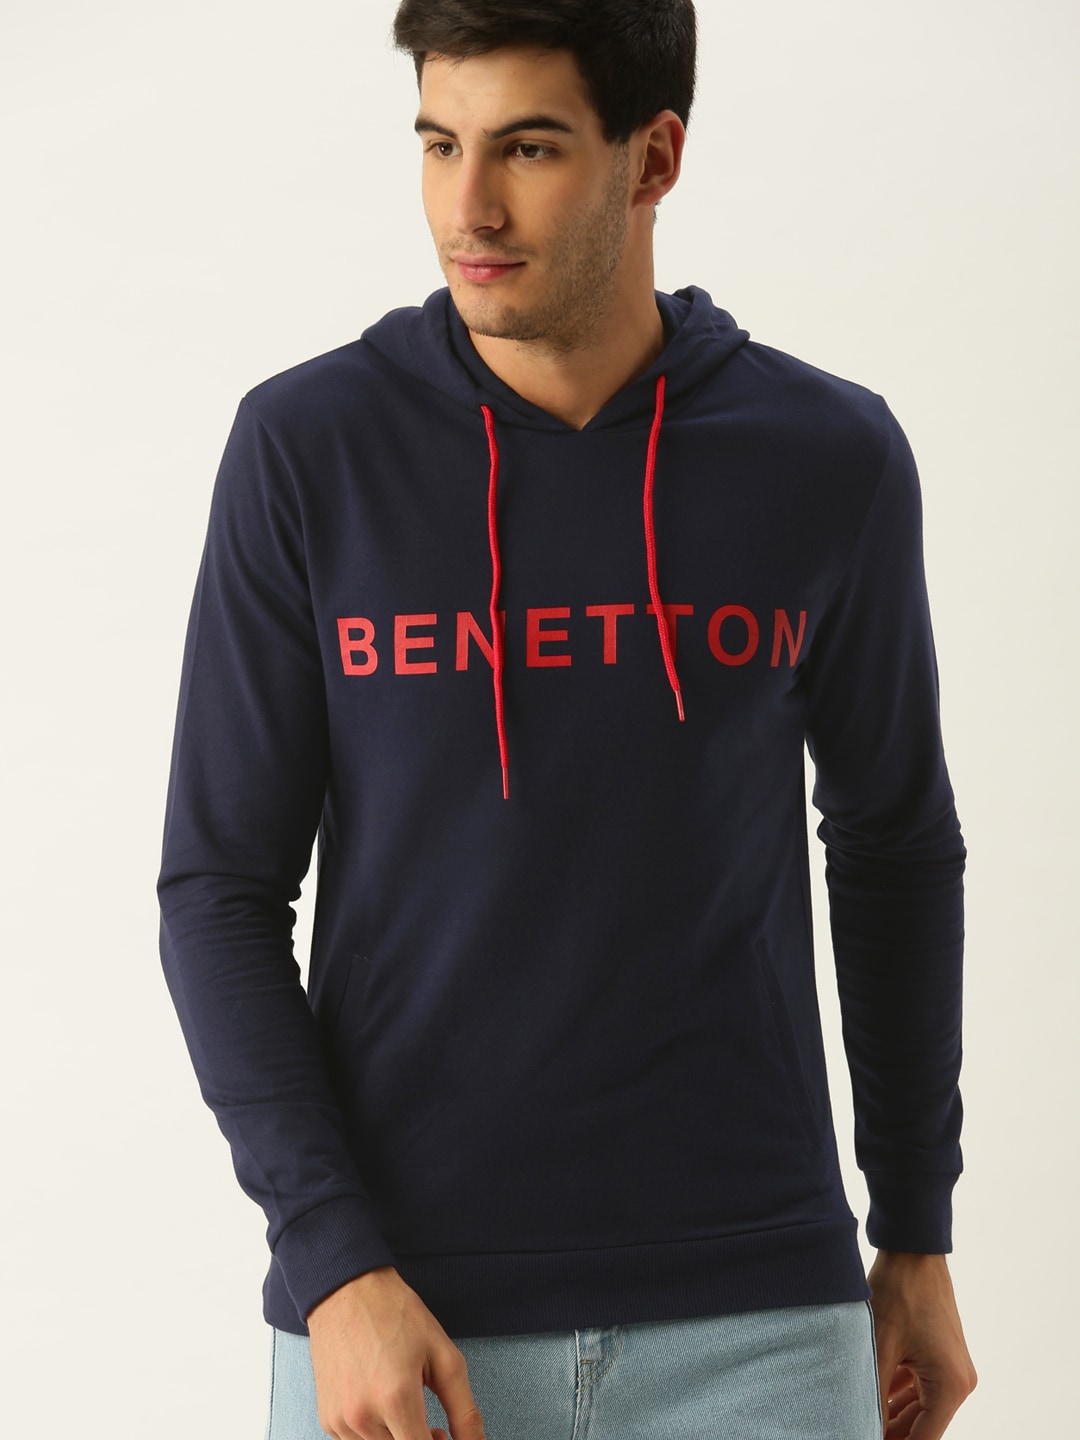 356d34d4 United Colors Of United Colors Of Benetton Deo Sweatshirts - Buy United  Colors Of United Colors Of Benetton Deo Sweatshirts online in India